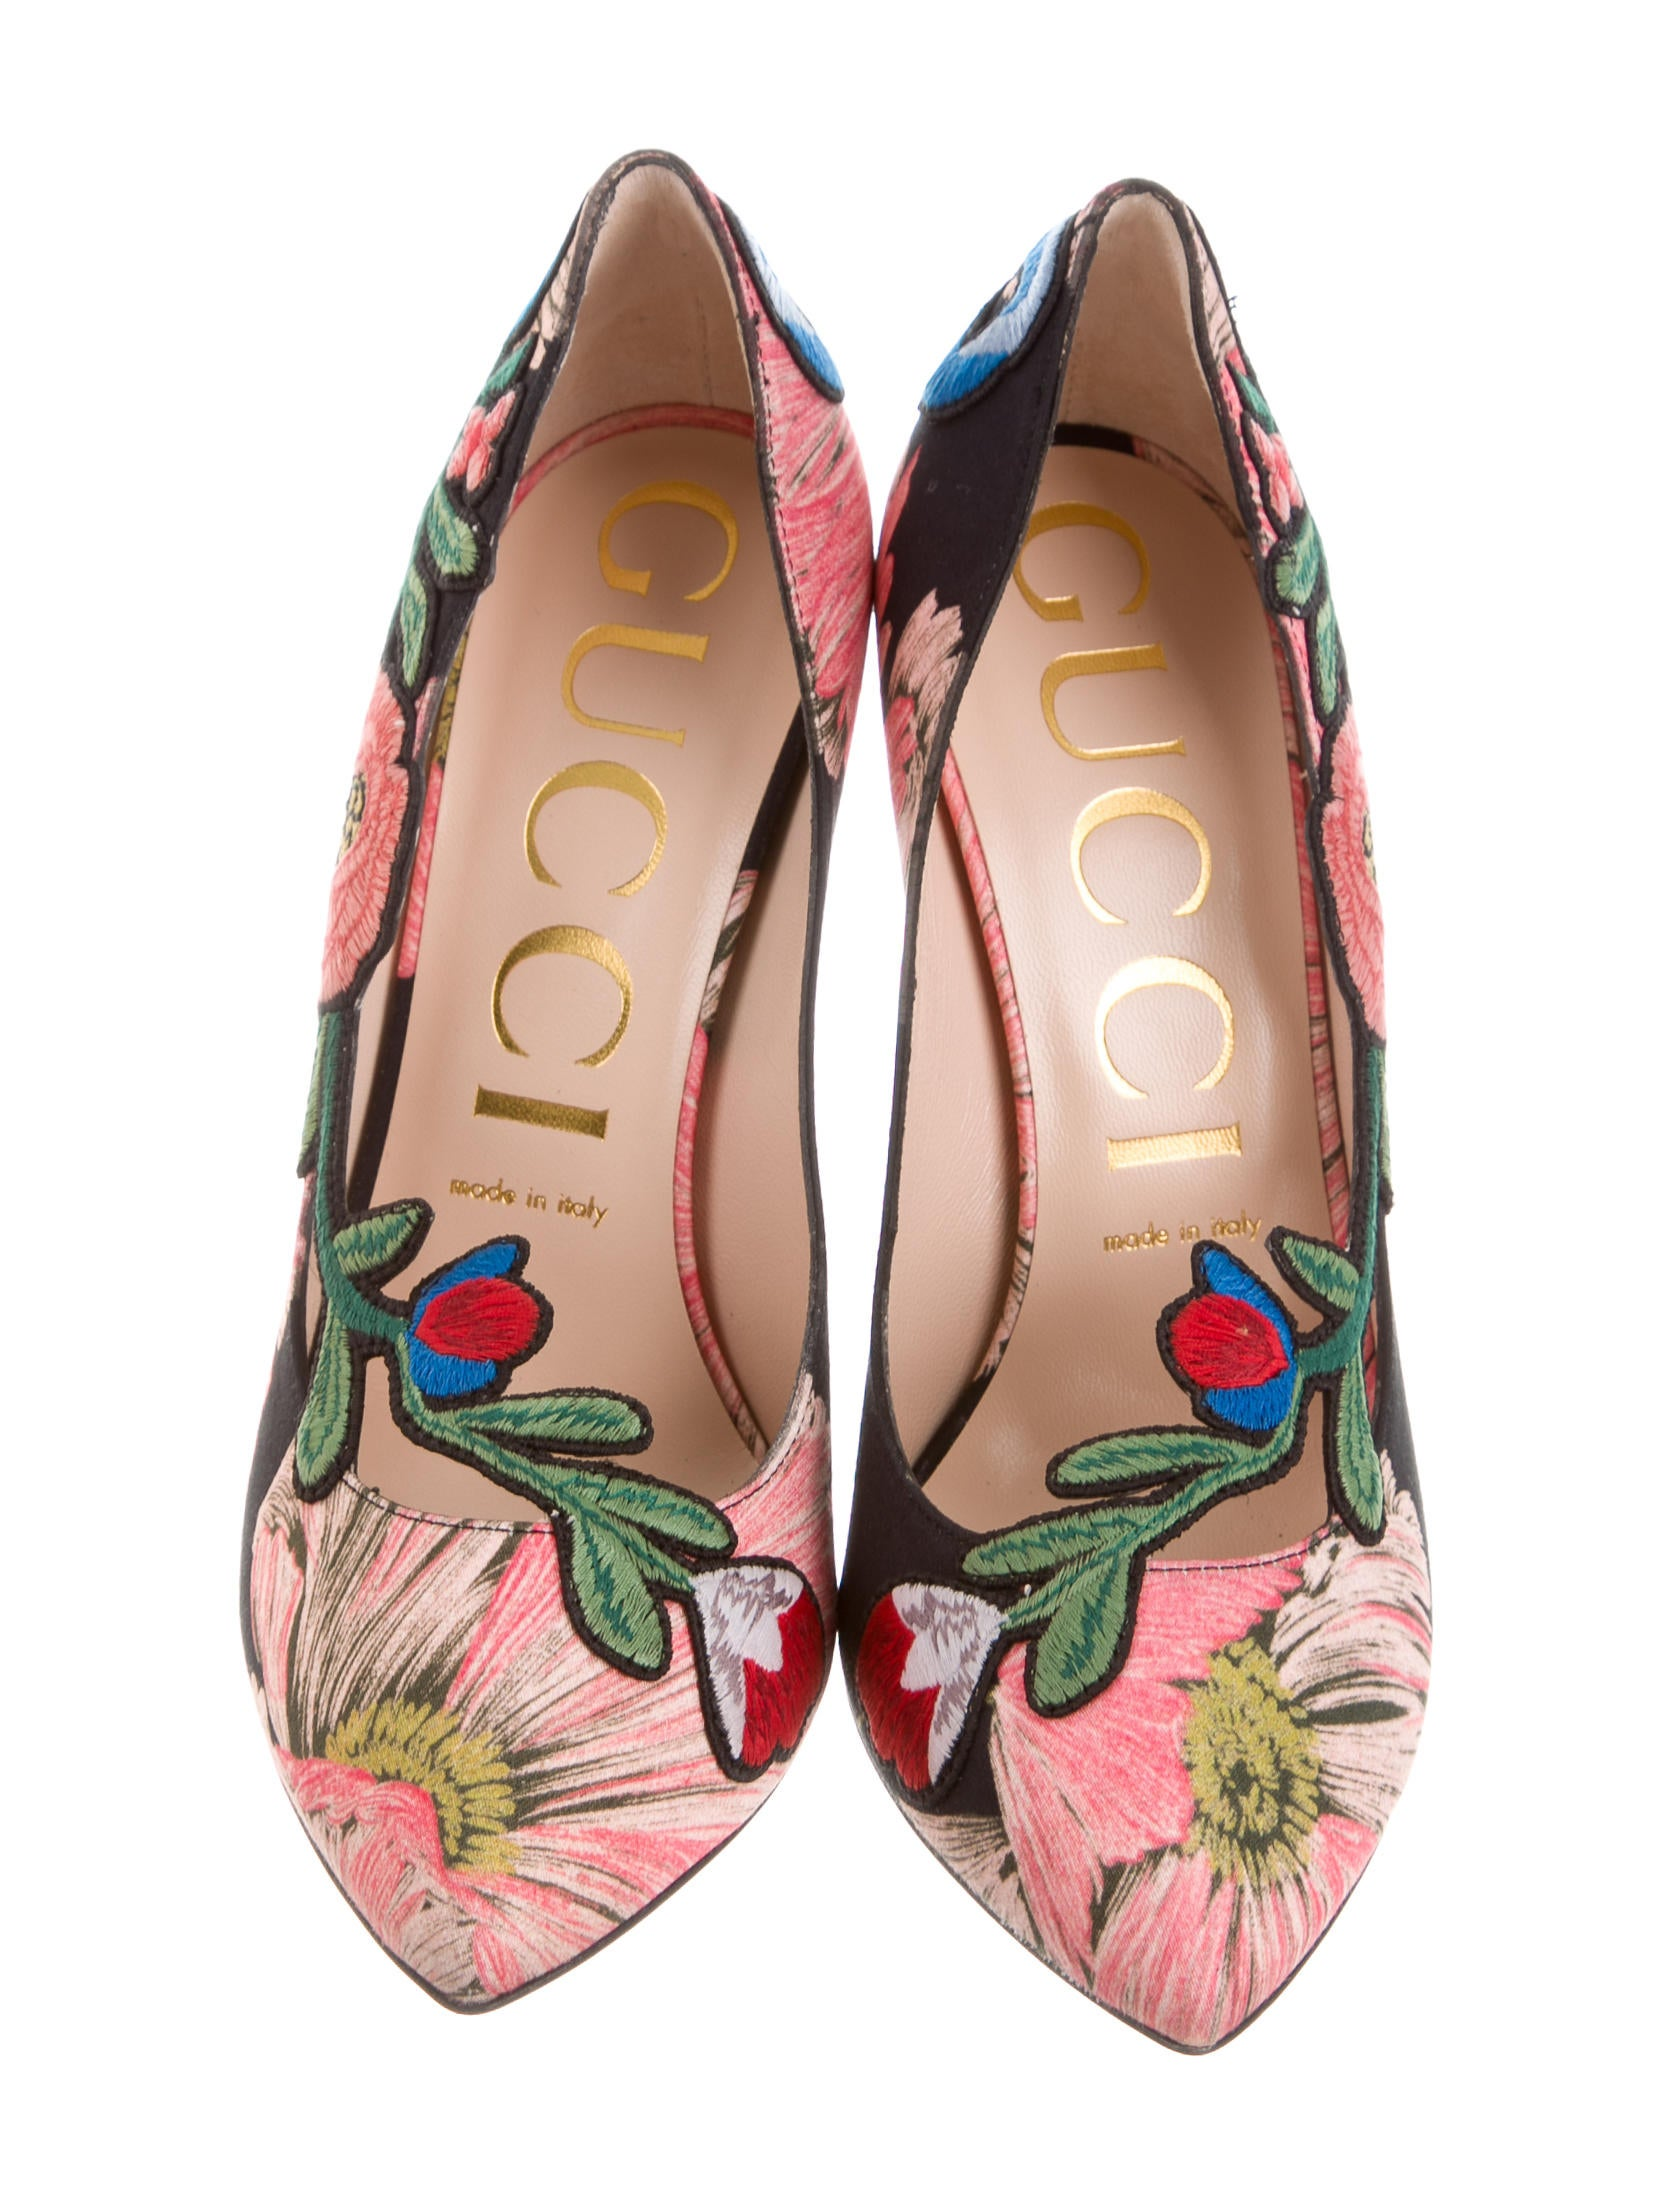 gucci 2017 floral embroidered pumps w   tags - shoes